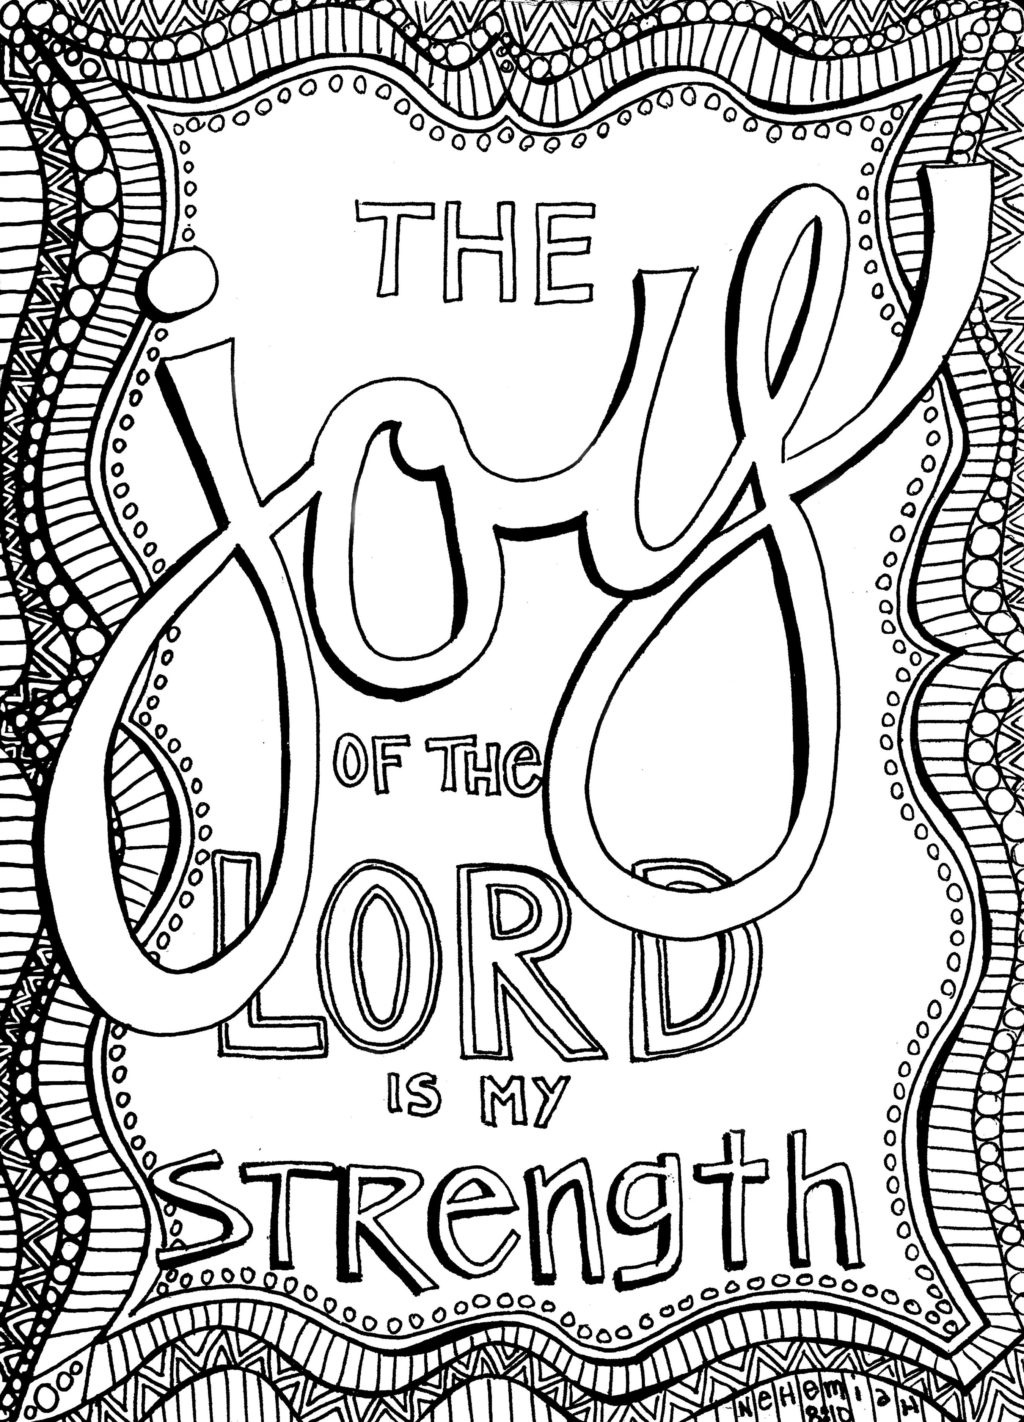 Coloring Book World ~ Coloring Book World Bible Verses Free - Free Printable Bible Coloring Pages With Verses